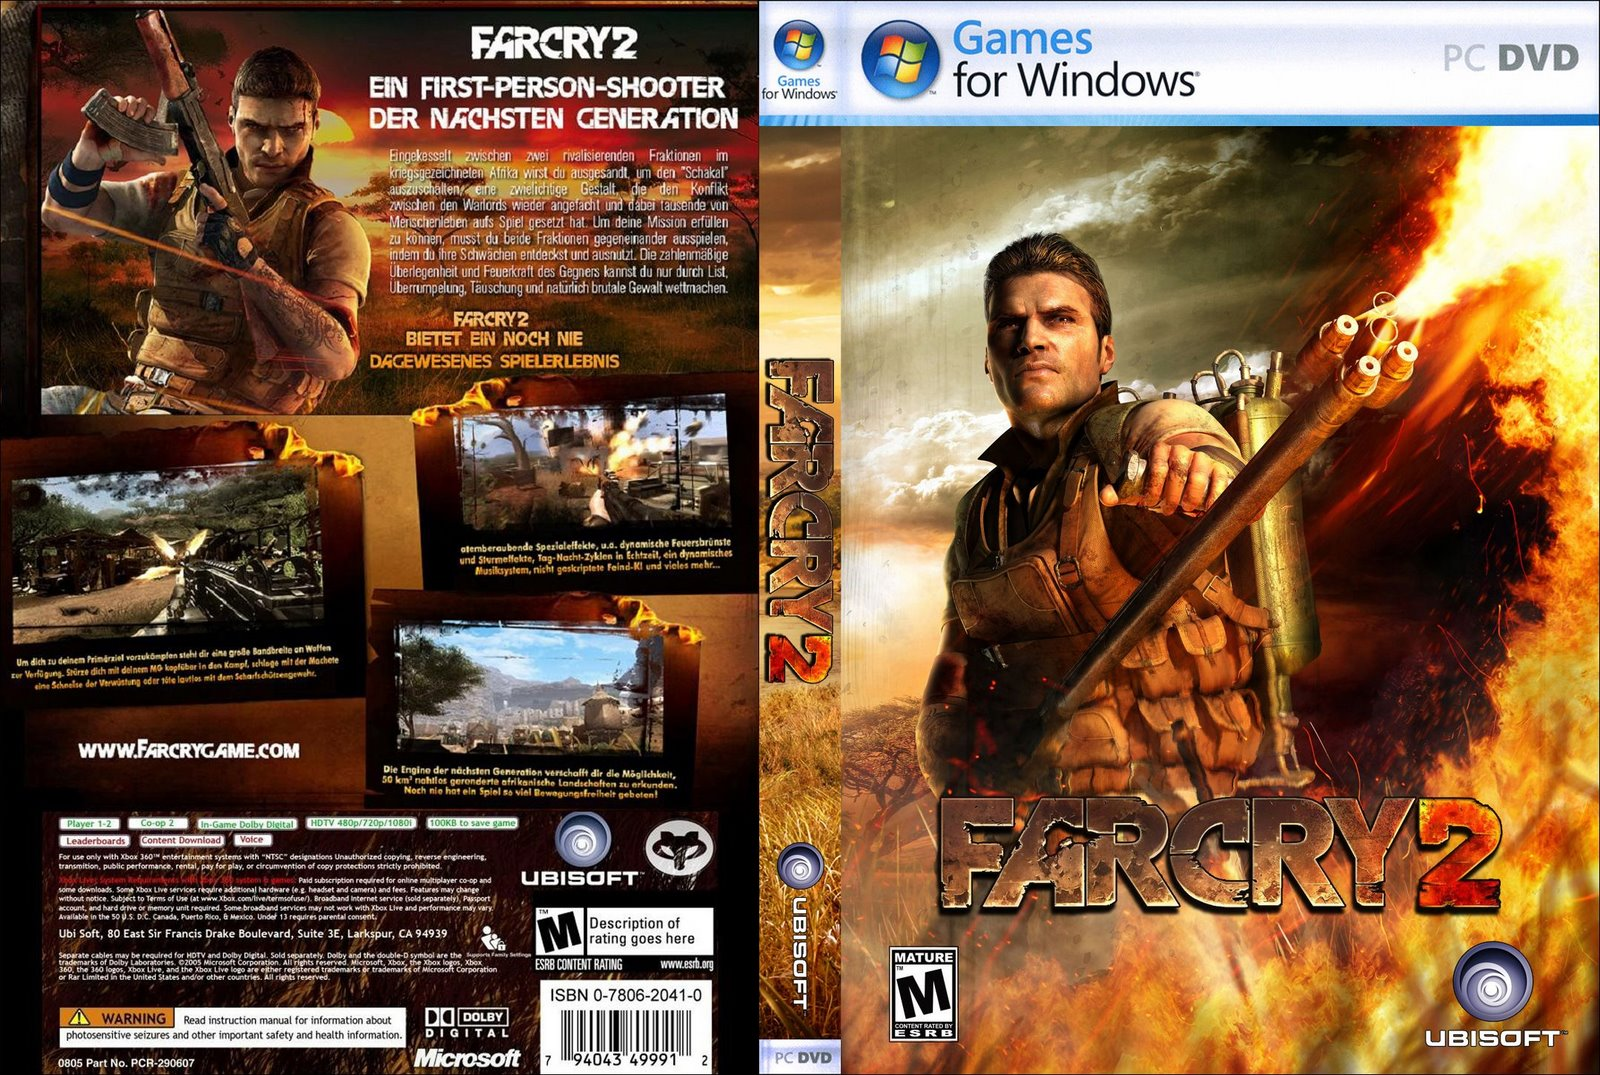 Far_Cry_2_-_Dvd_-_Custom_por_jarlaxe_%5Bpc%5D_80.jpg